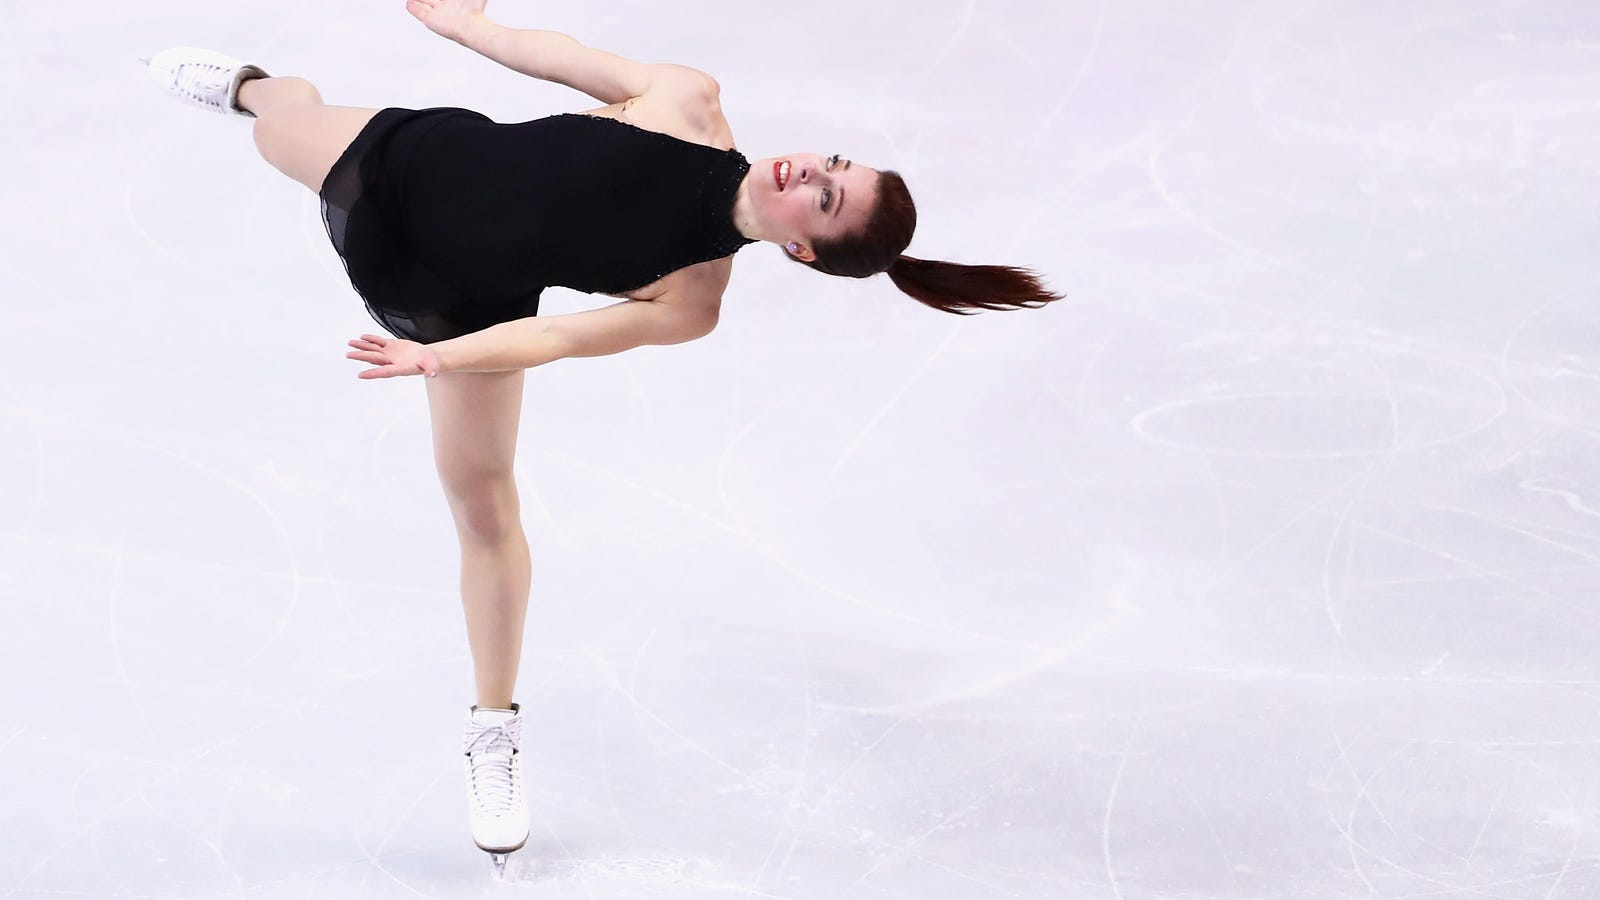 Why Is Ashley Wagner Apologizing For Her Sport In ESPN The Magazine's Body Issue?